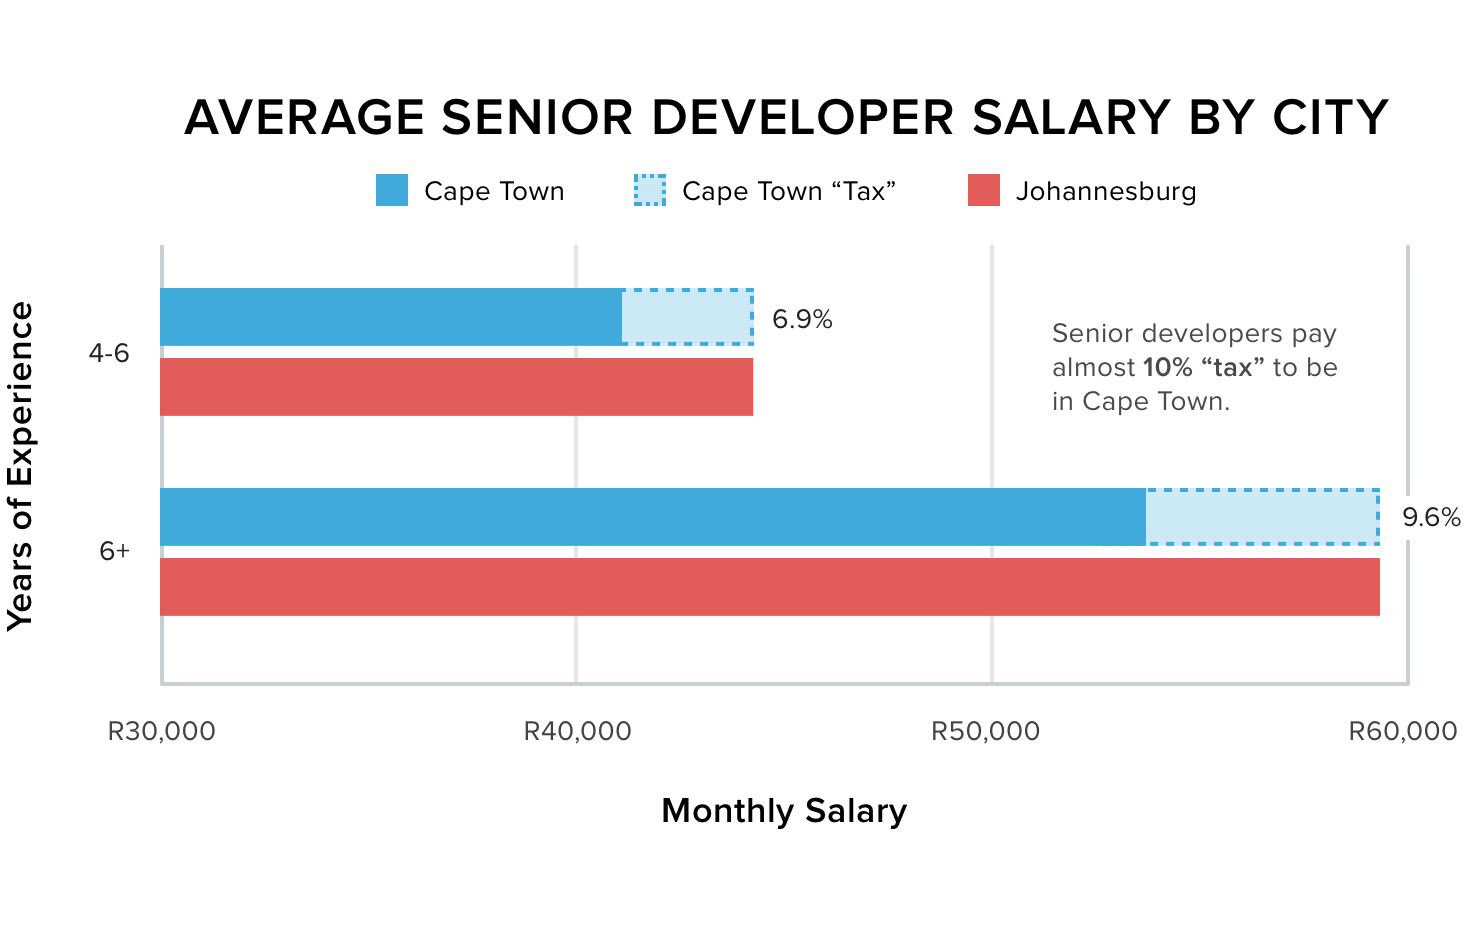 Average senior developer salary by city